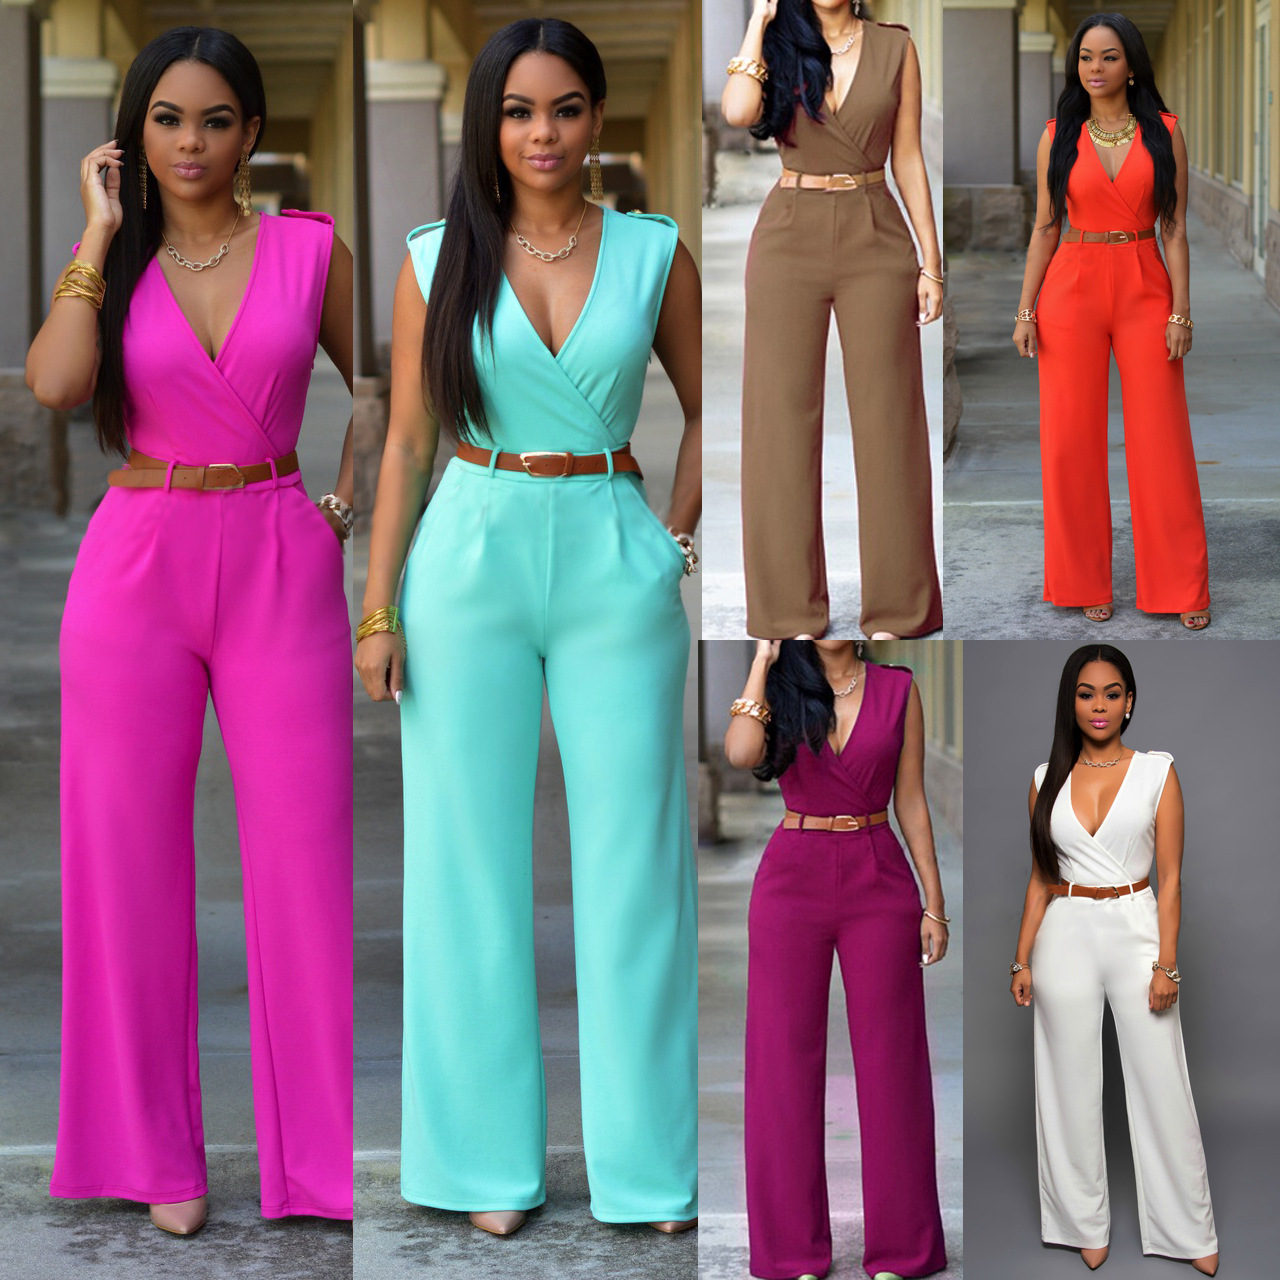 7cfbe8cf50d AliExpress Top Selling European and American Style Fashion Women s Loose  Casual Pants Leisure Jumpsuits (with